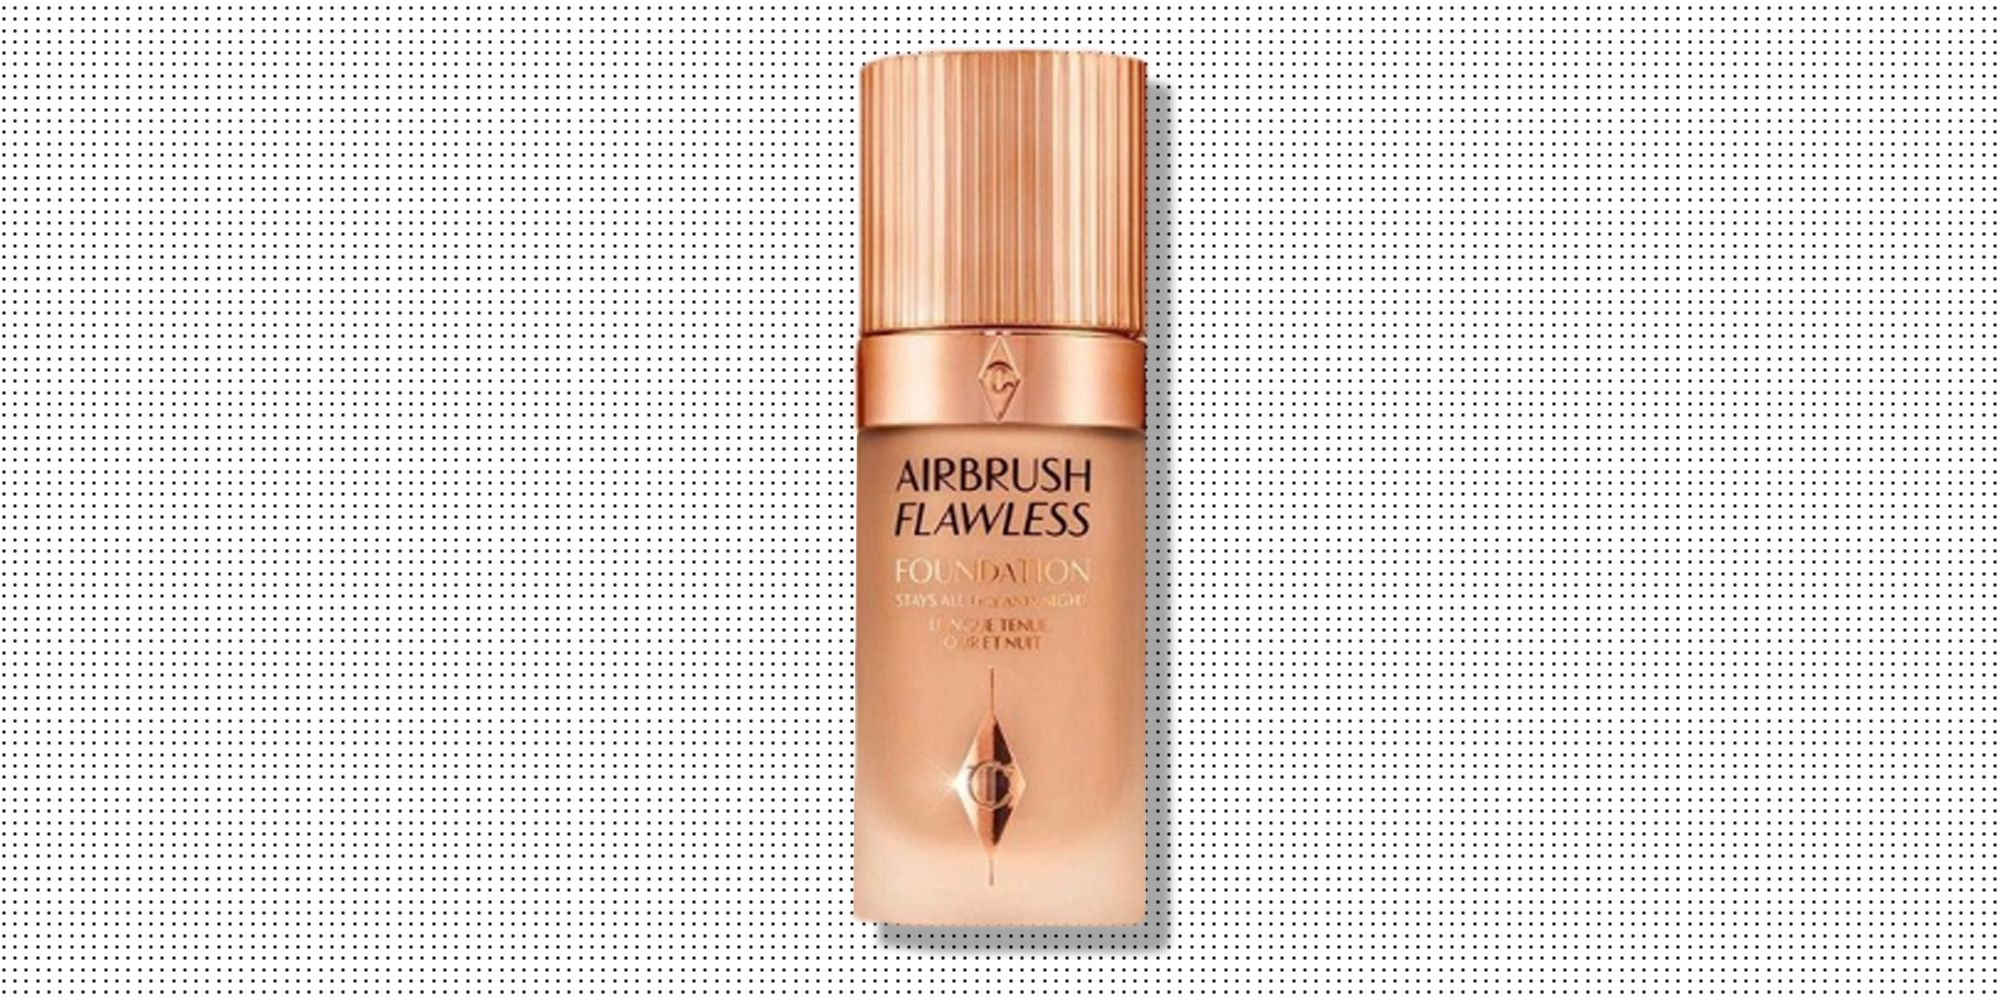 Charlotte Tilbury Launches New Airbrush Flawless Foundation